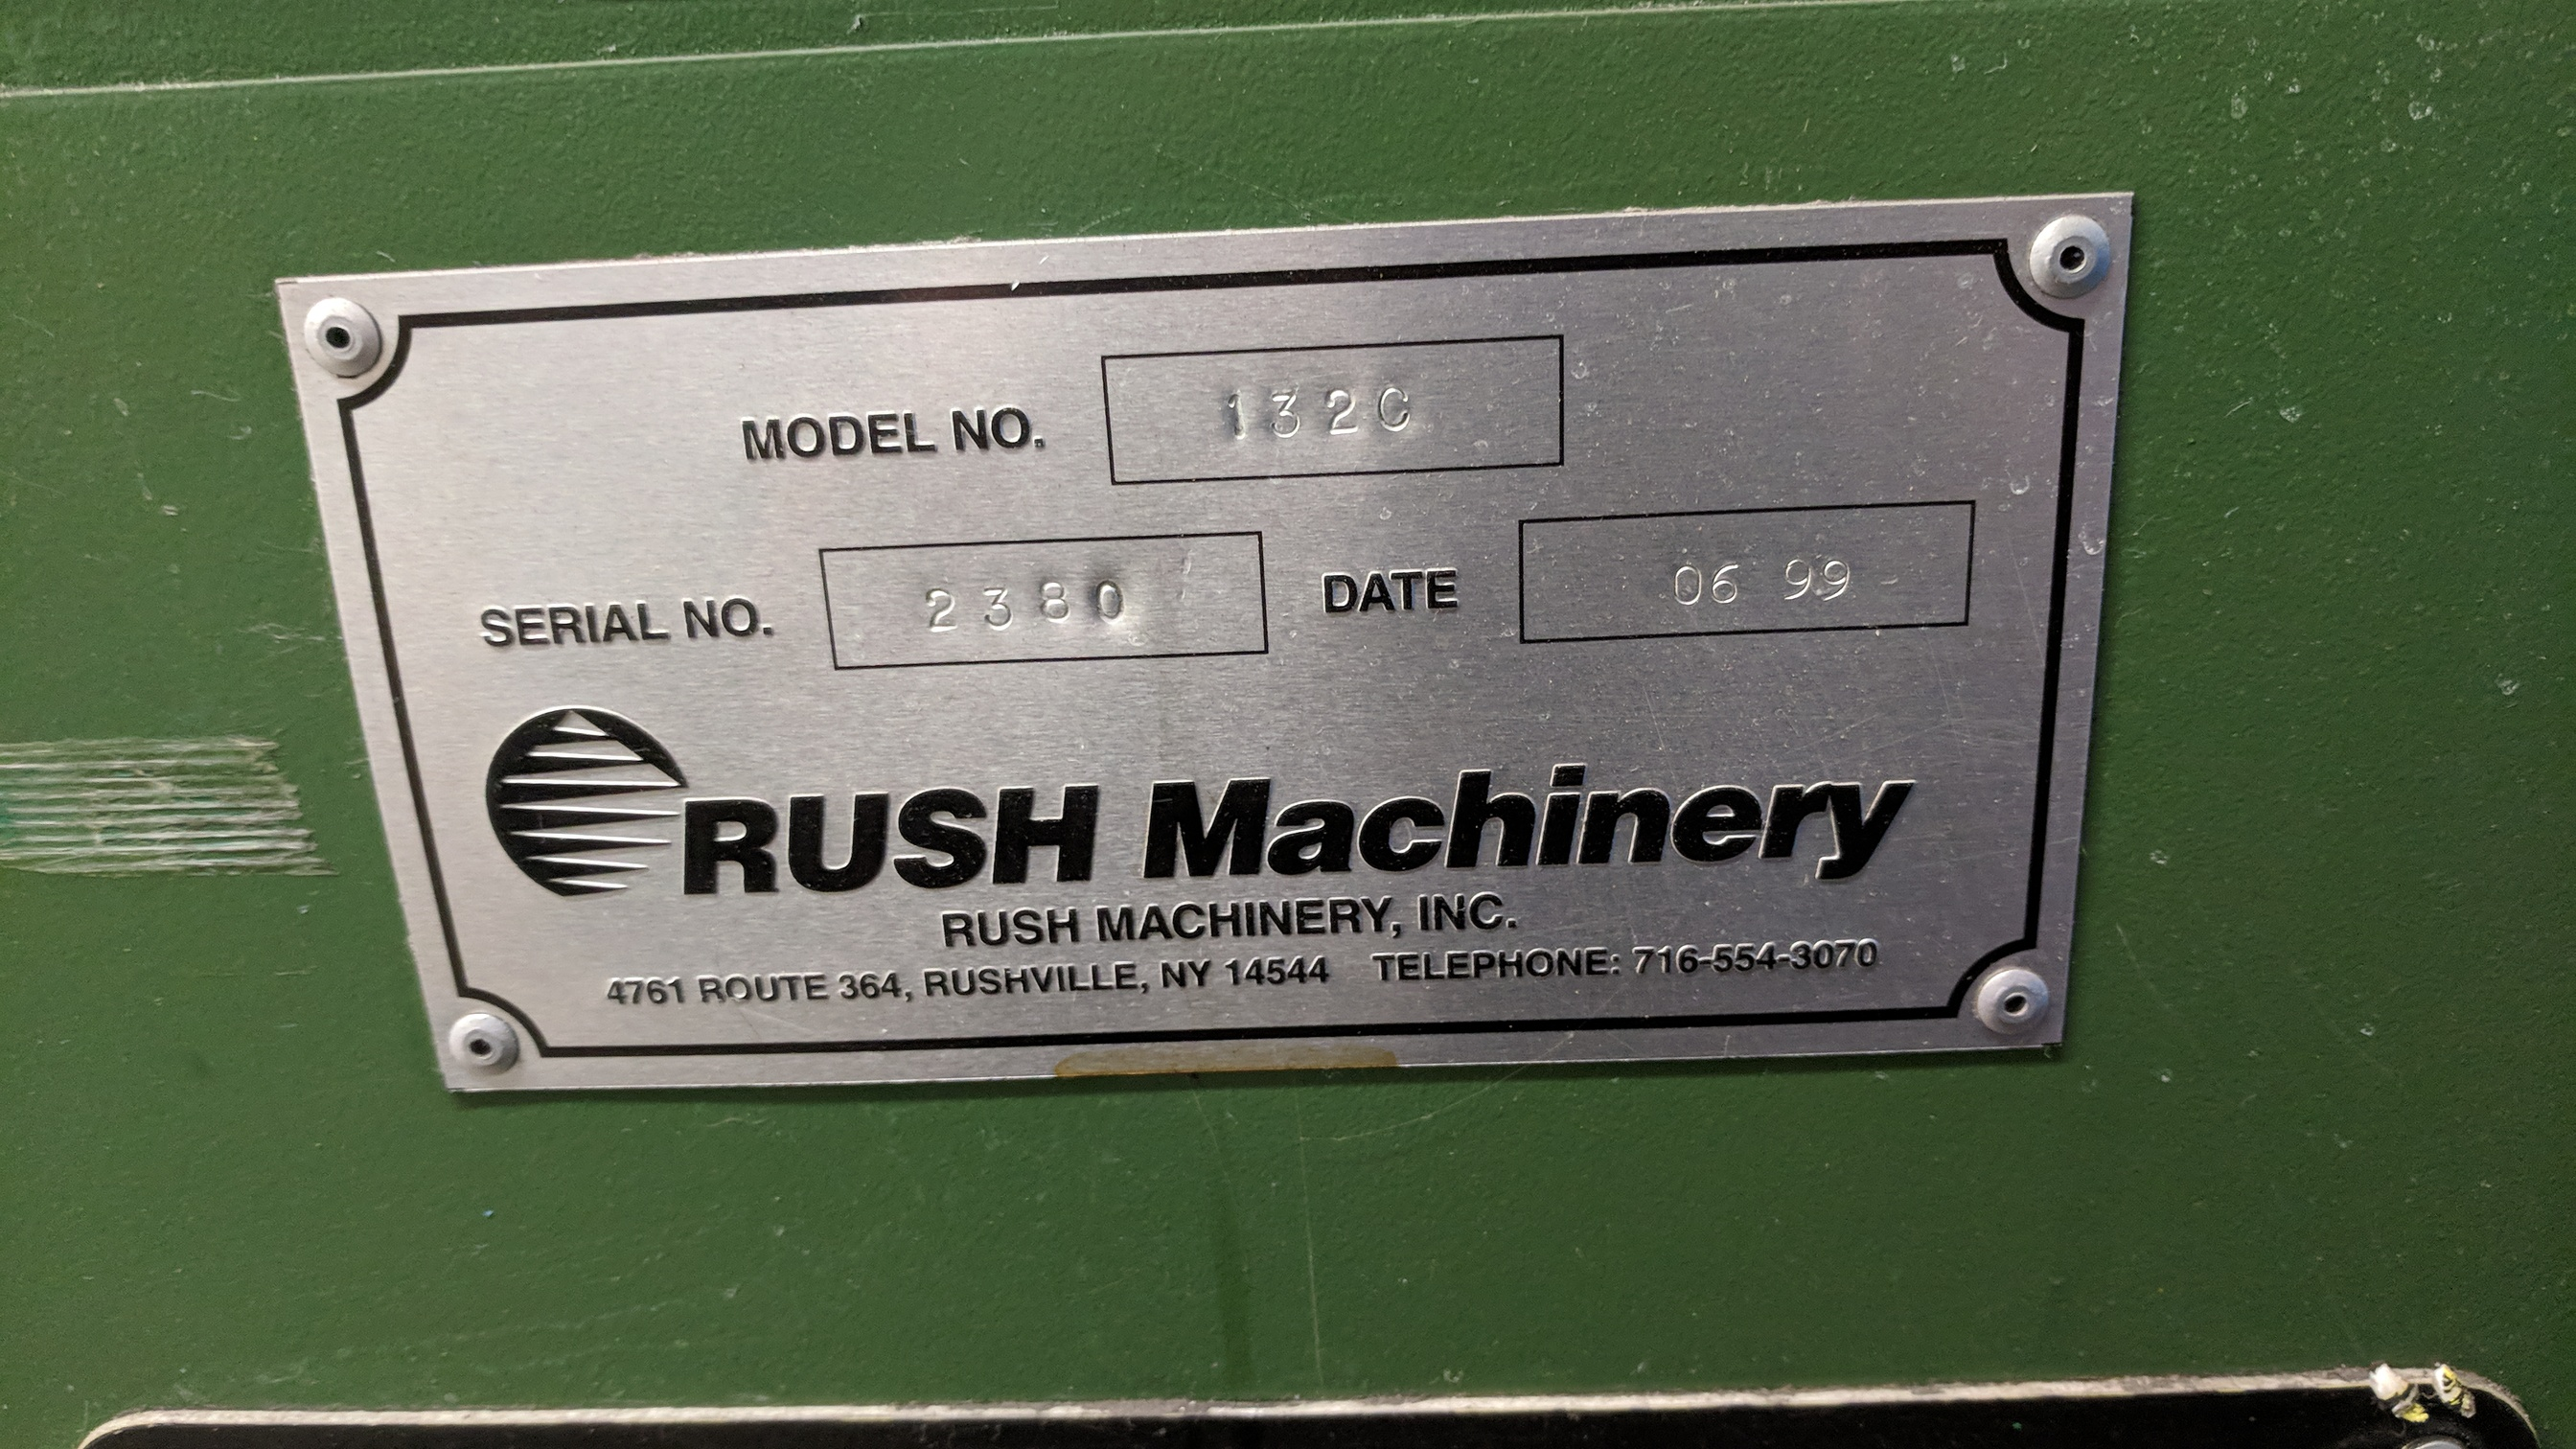 """RUSH MACHINERY (1999) 132C TOOL AND CUTTER GRINDER WITH 0.80"""" TO 1.25"""" CAPACITY, S/N 2380 (CI) - Image 2 of 3"""